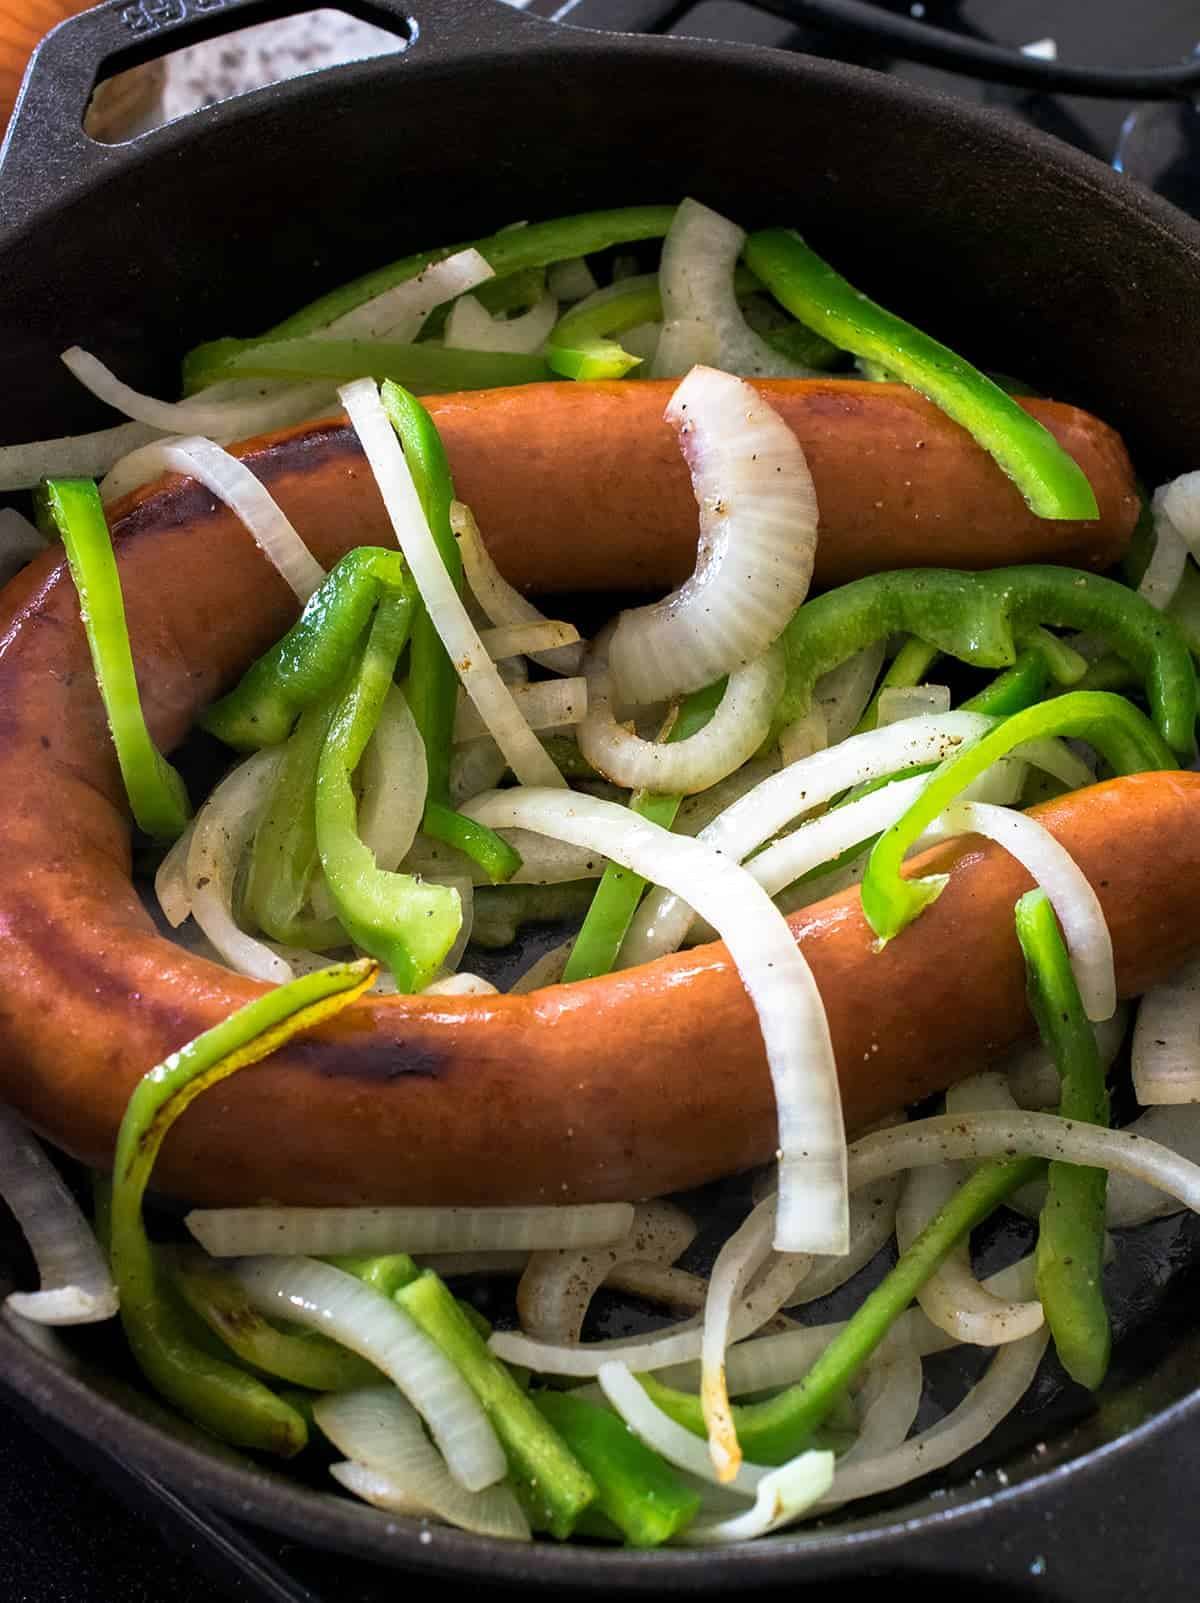 Cast iron skillet with whole kielbasa sausage and slice onions and green peppers.